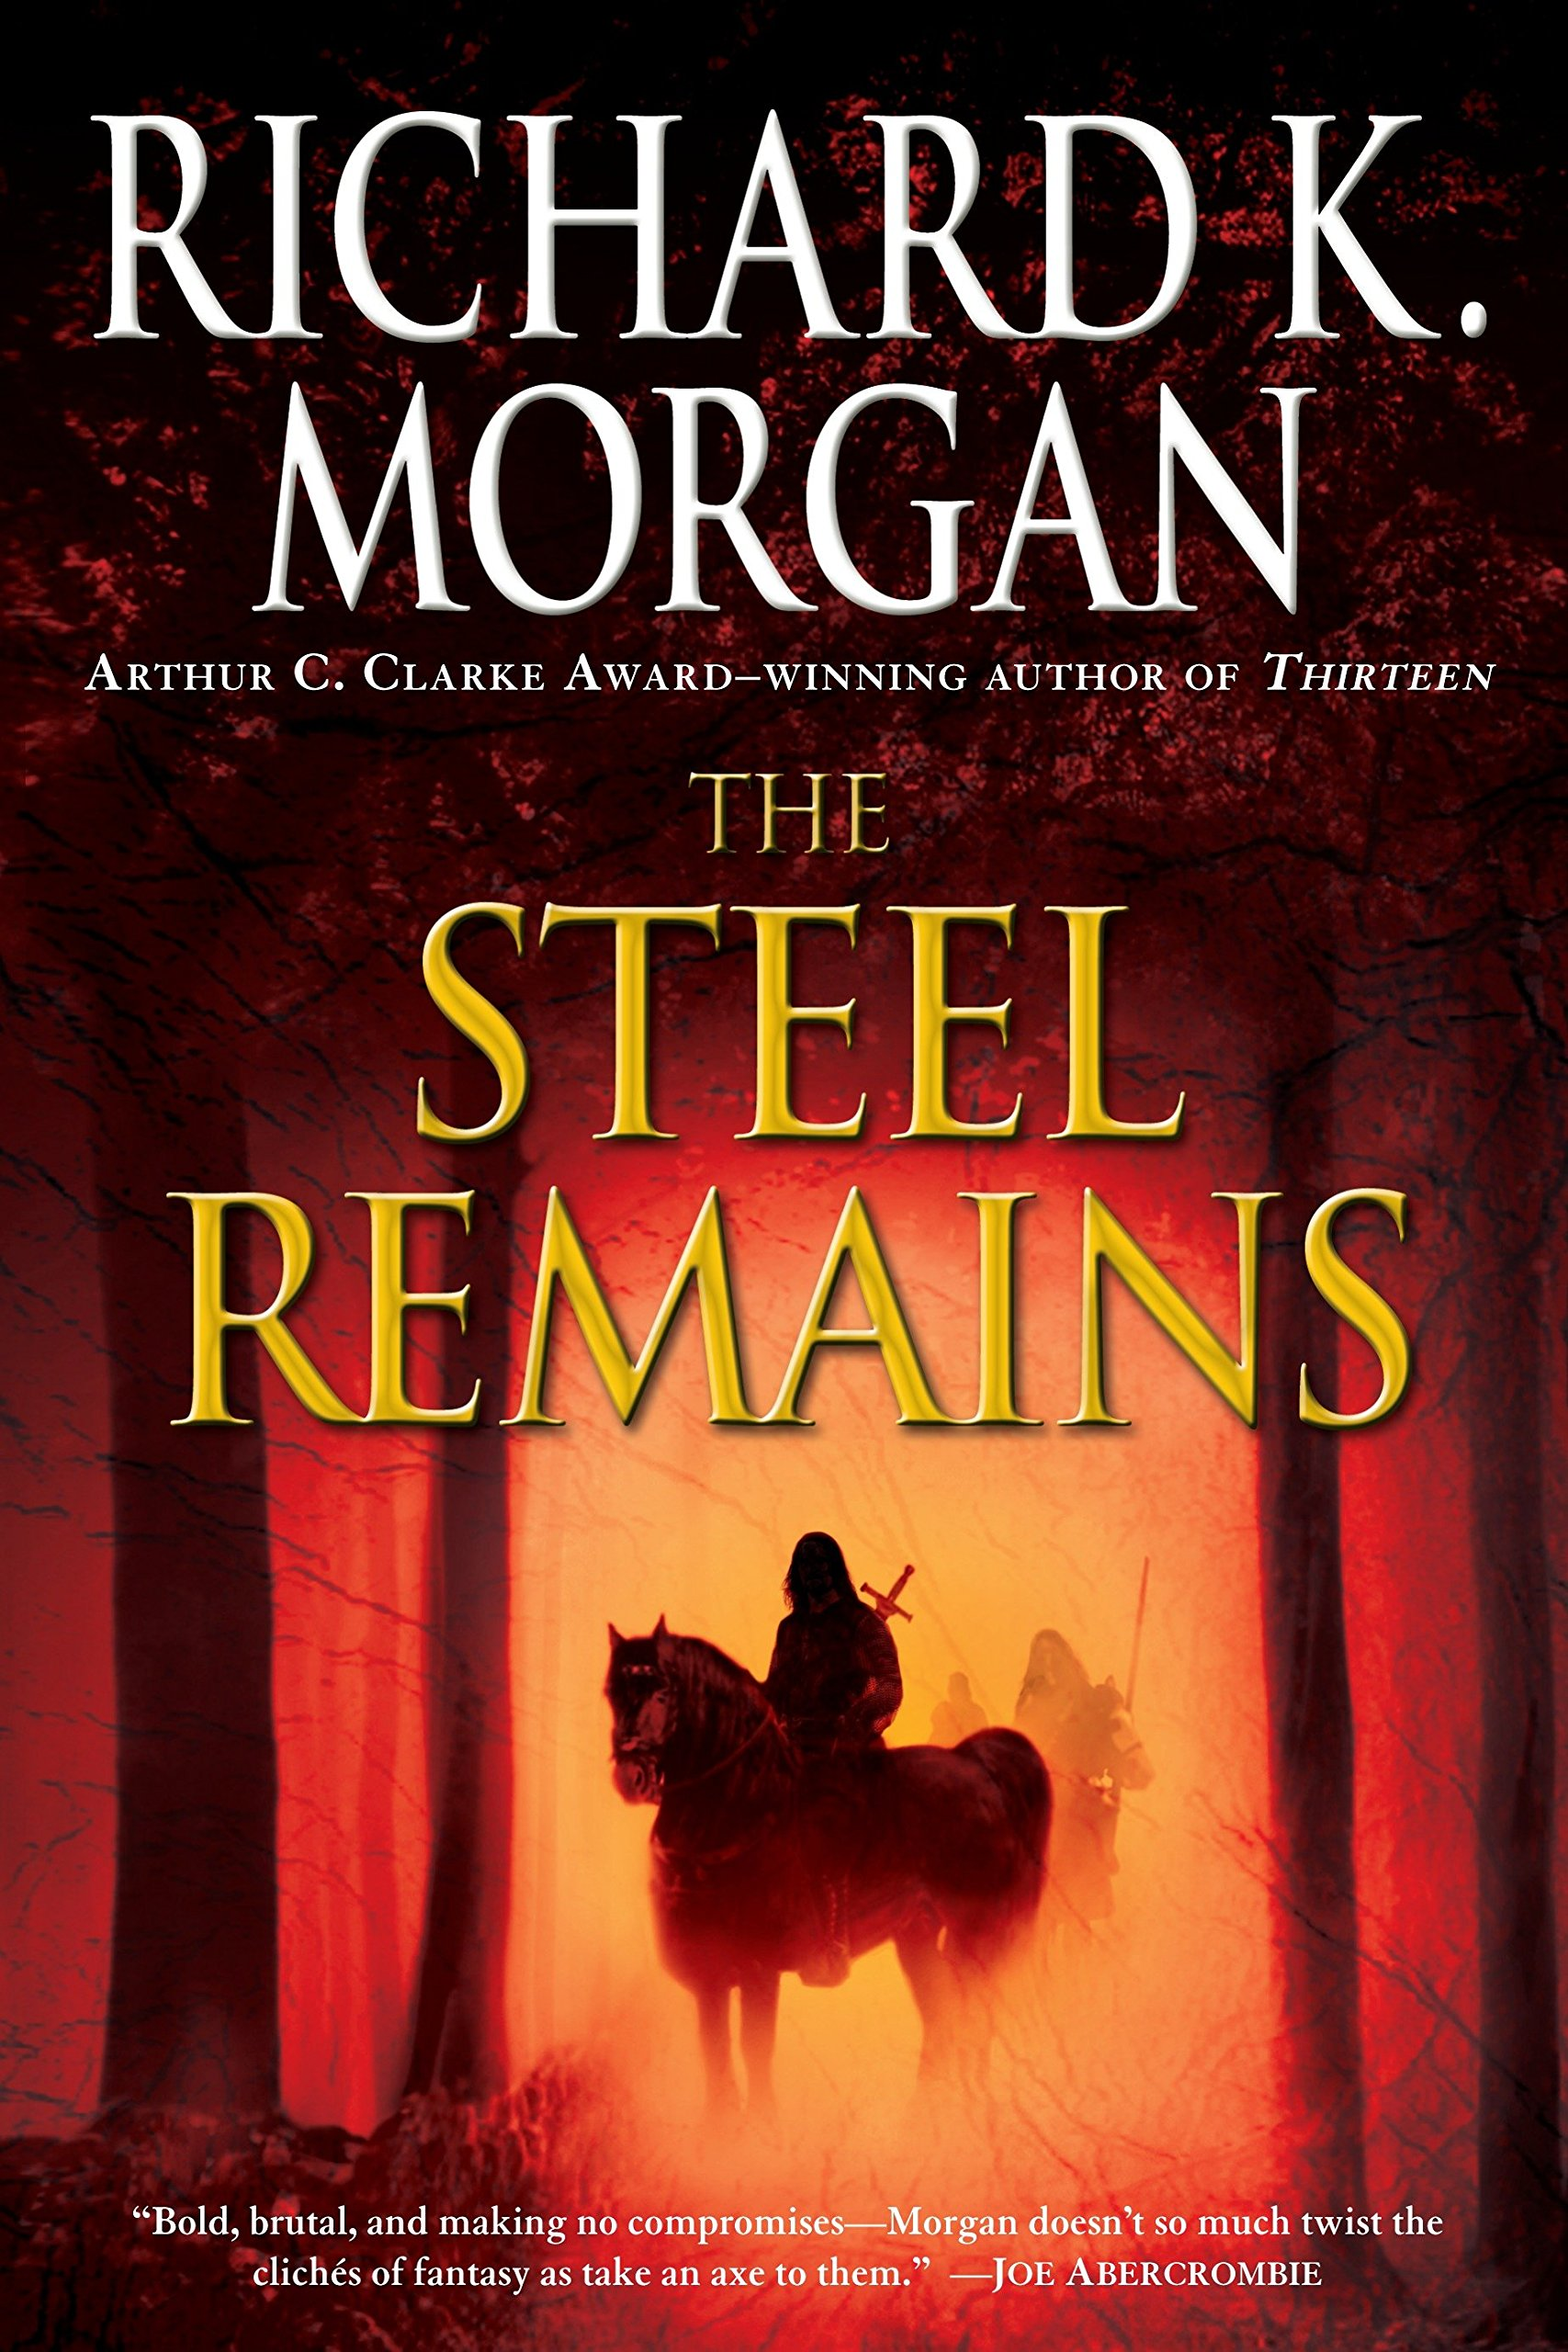 The Steel Remains (A Land Fit for Heroes) Paperback – January 12, 2010 Richard K. Morgan Del Rey 0345493044 FIC009000